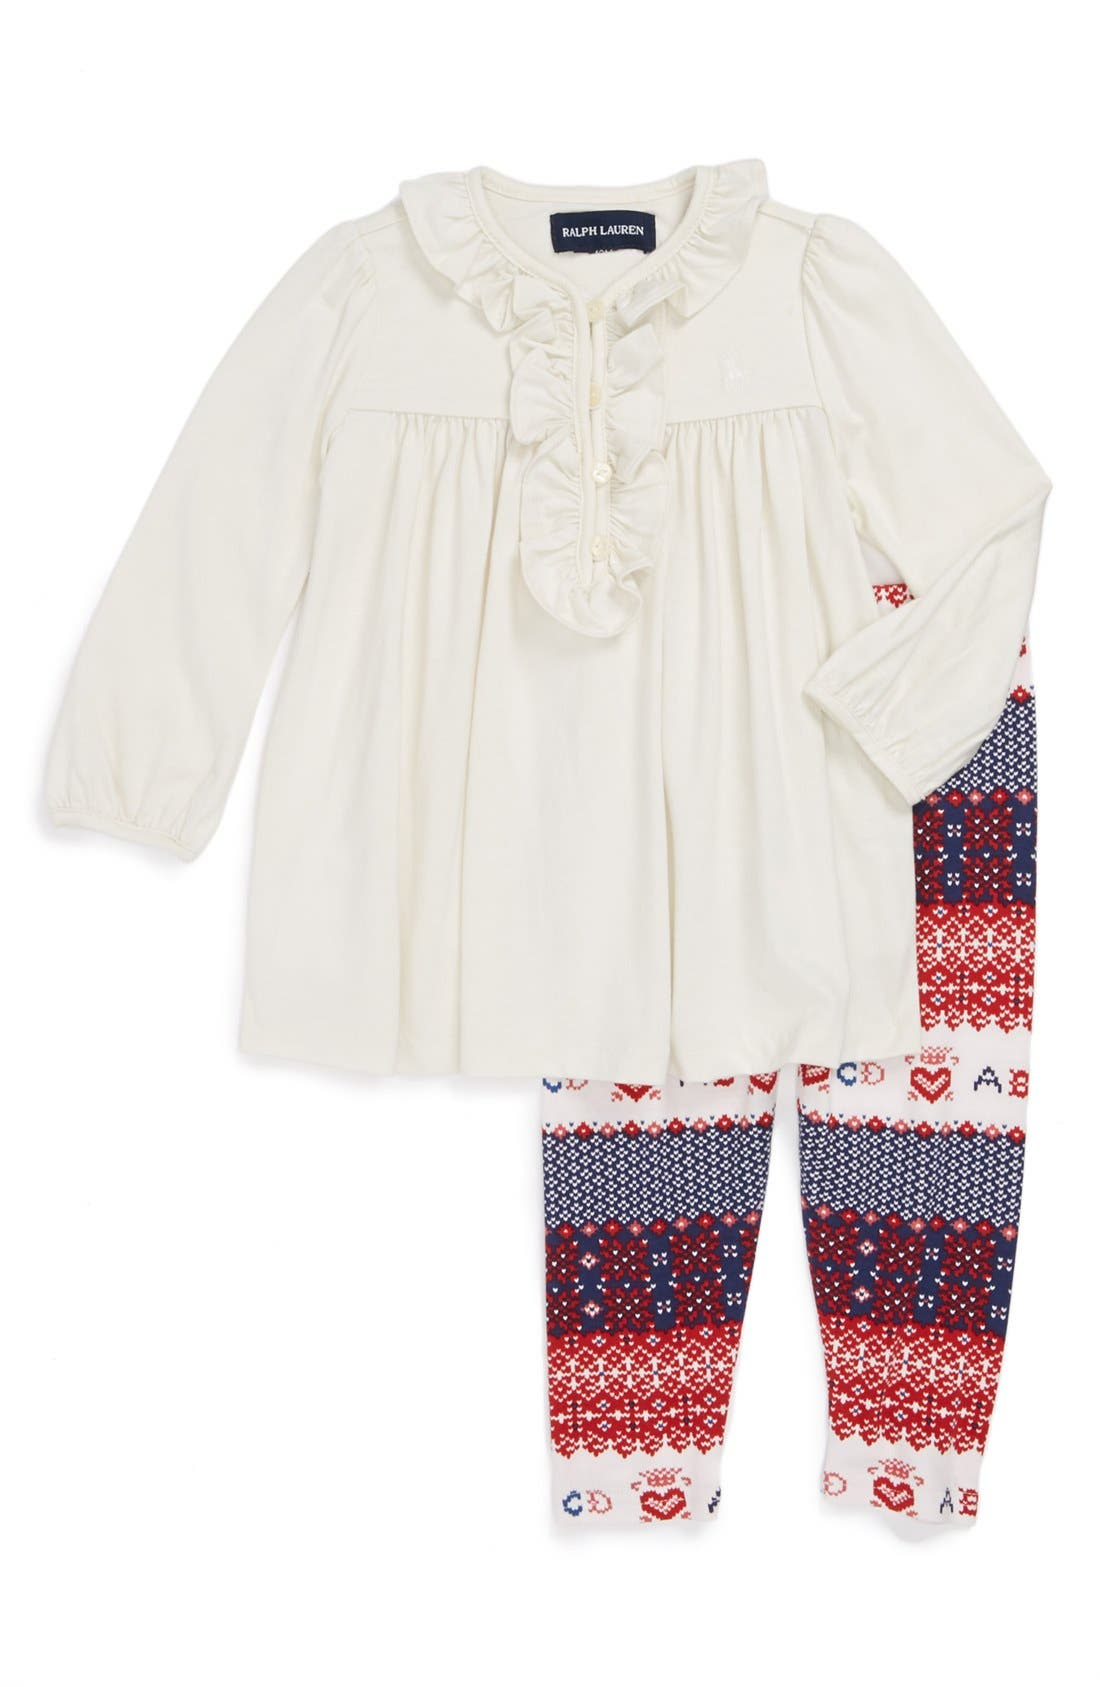 Alternate Image 1 Selected - Ralph Lauren Tunic & Print Leggings (Baby Girls)